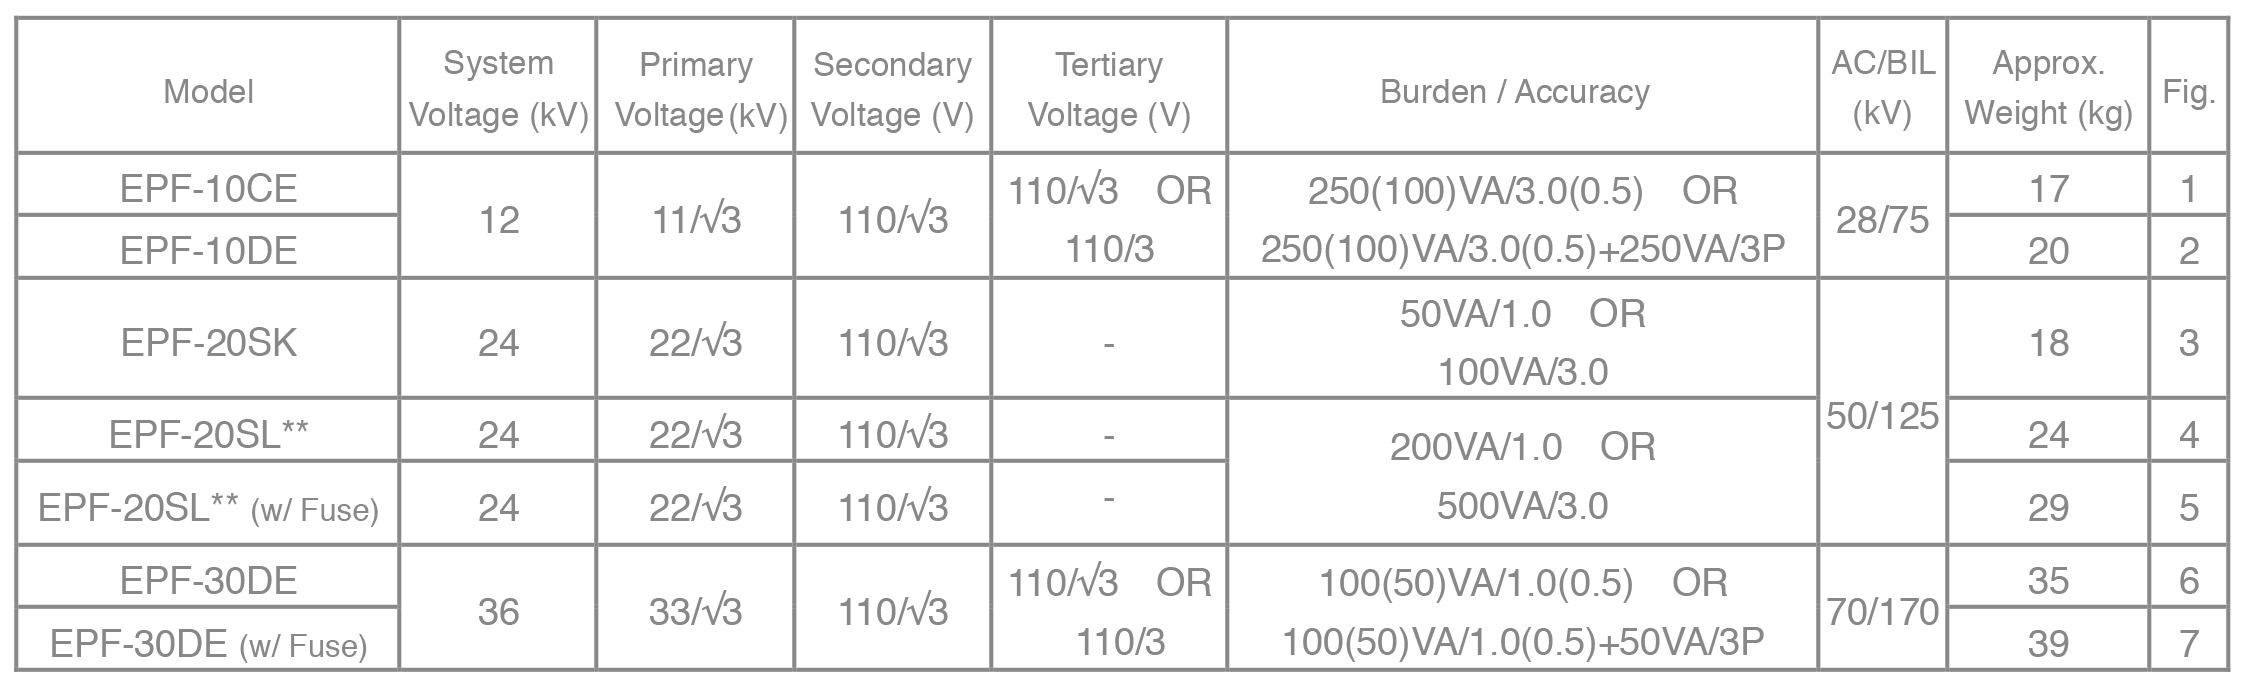 Single-Pole Potential Transformers (or Three-Phase PT + GPT) - Selection Table